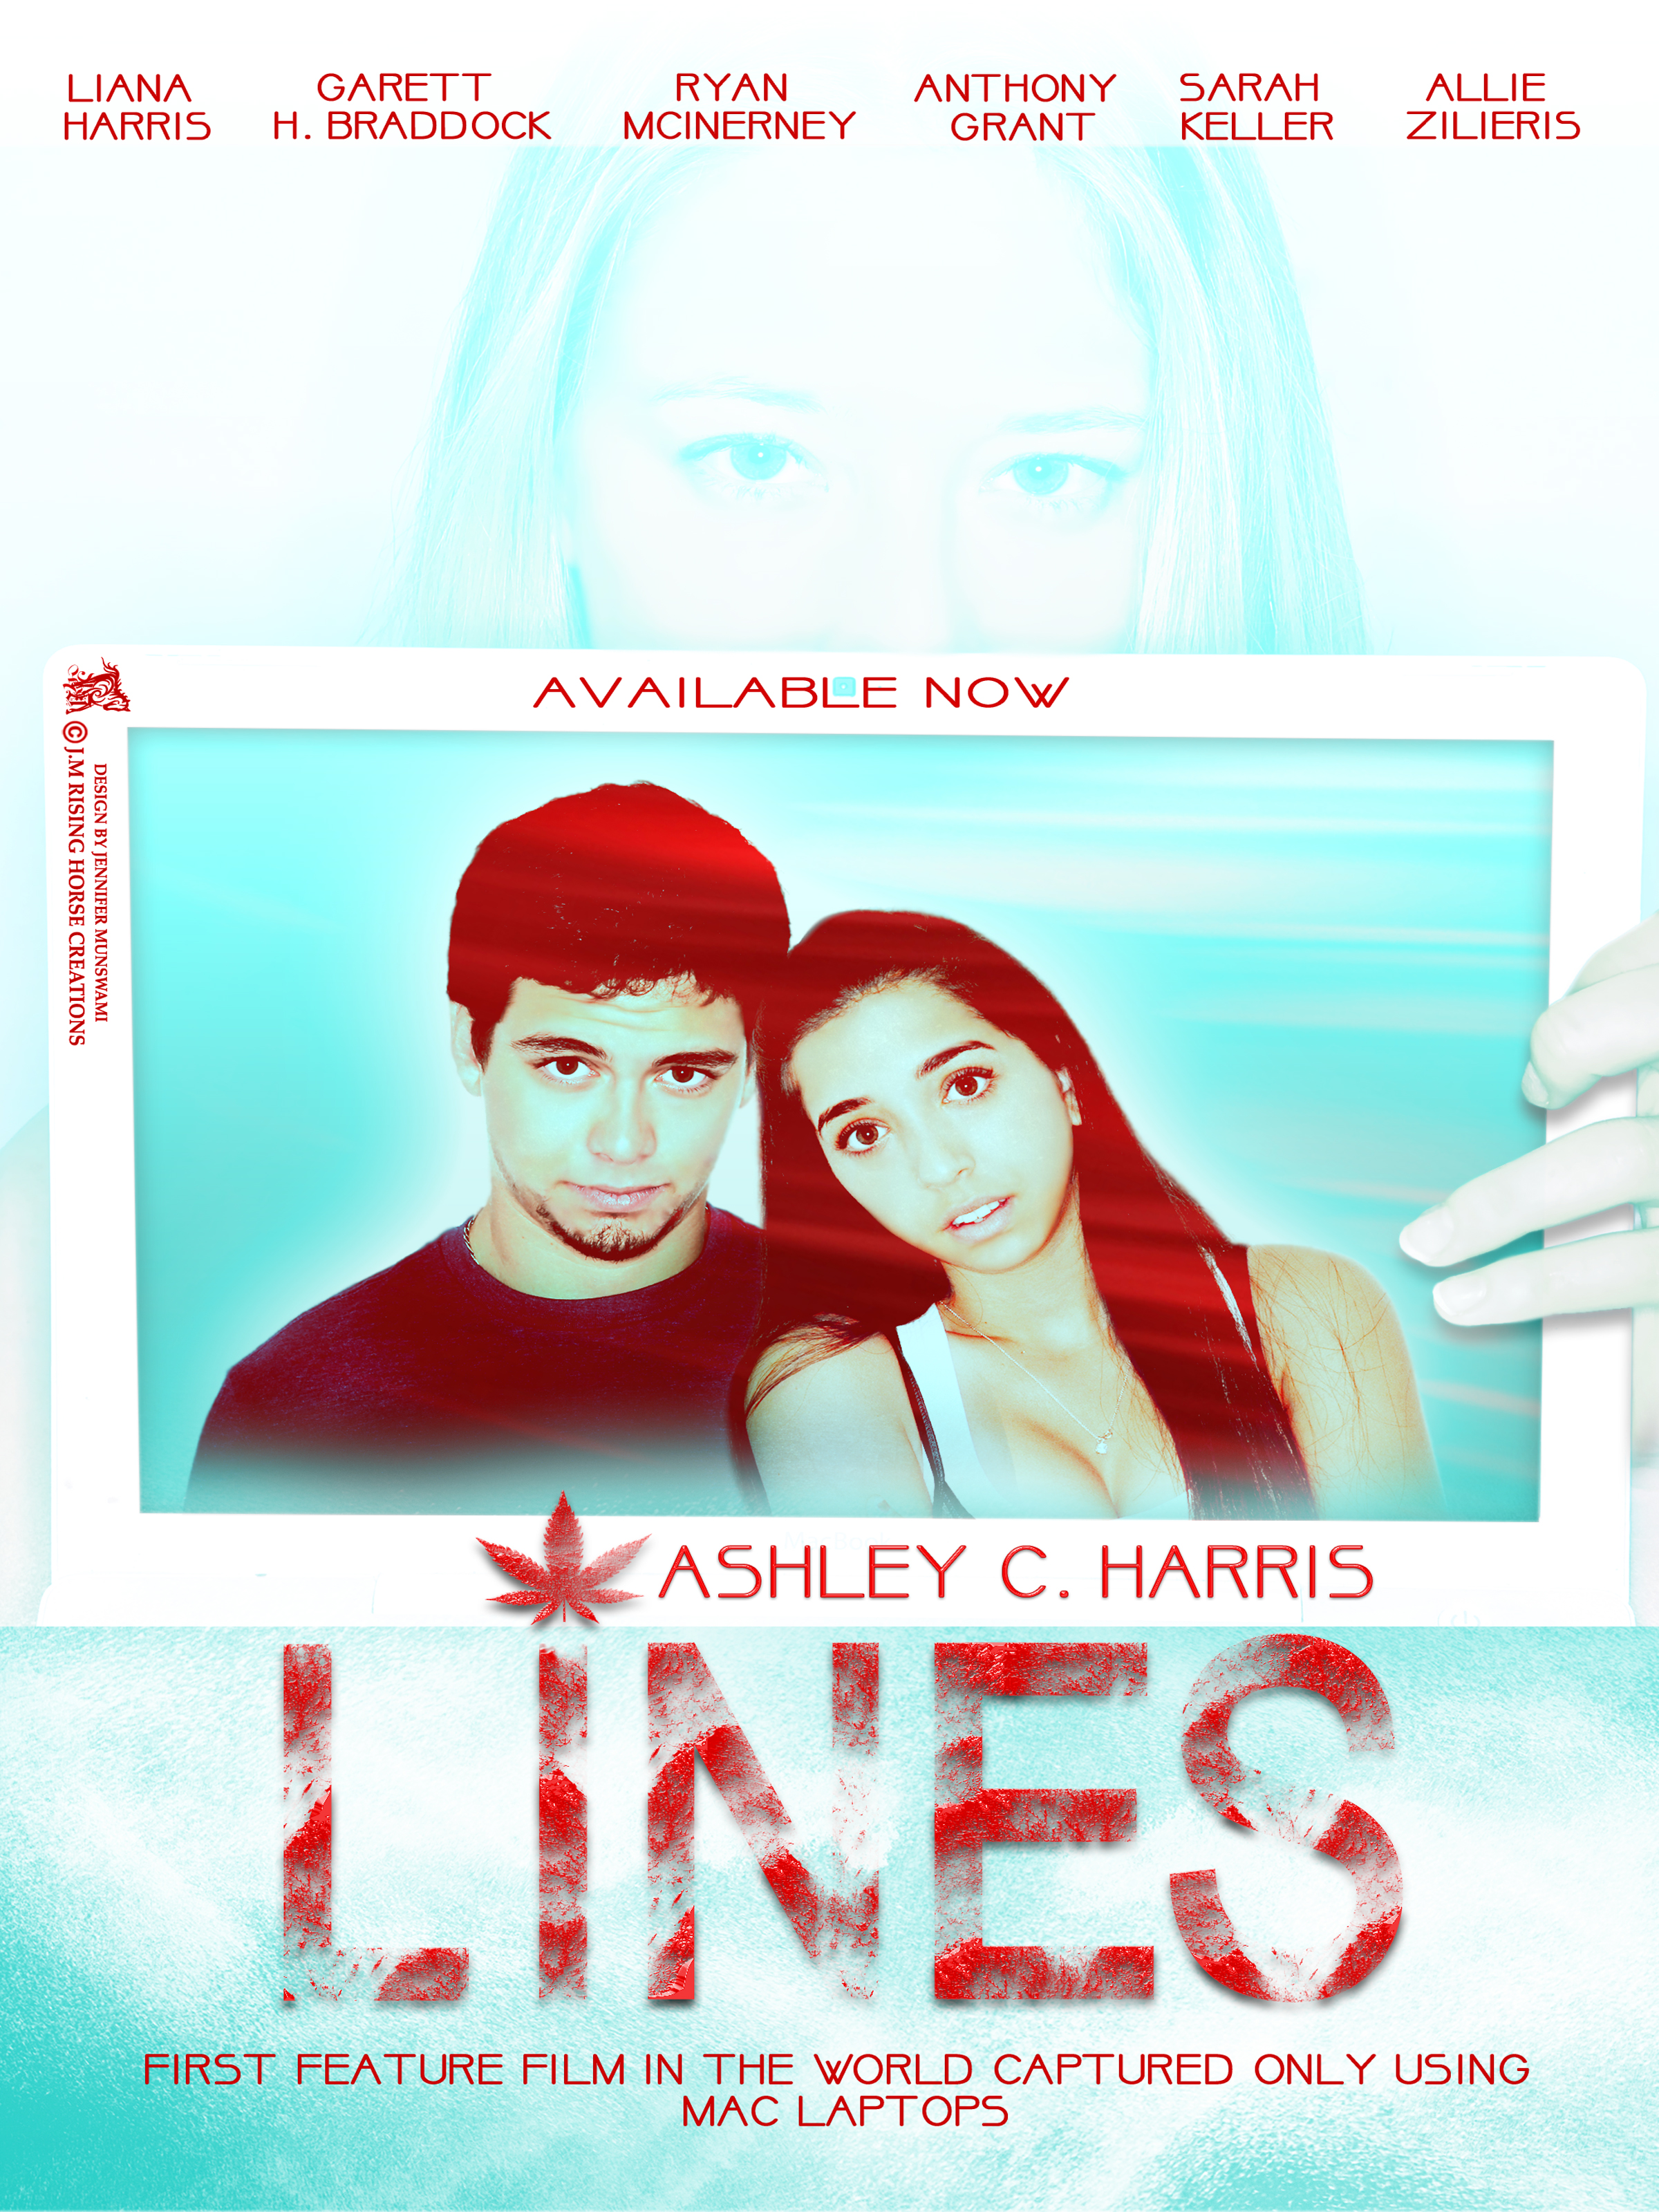 LINES POSTER2.jpg